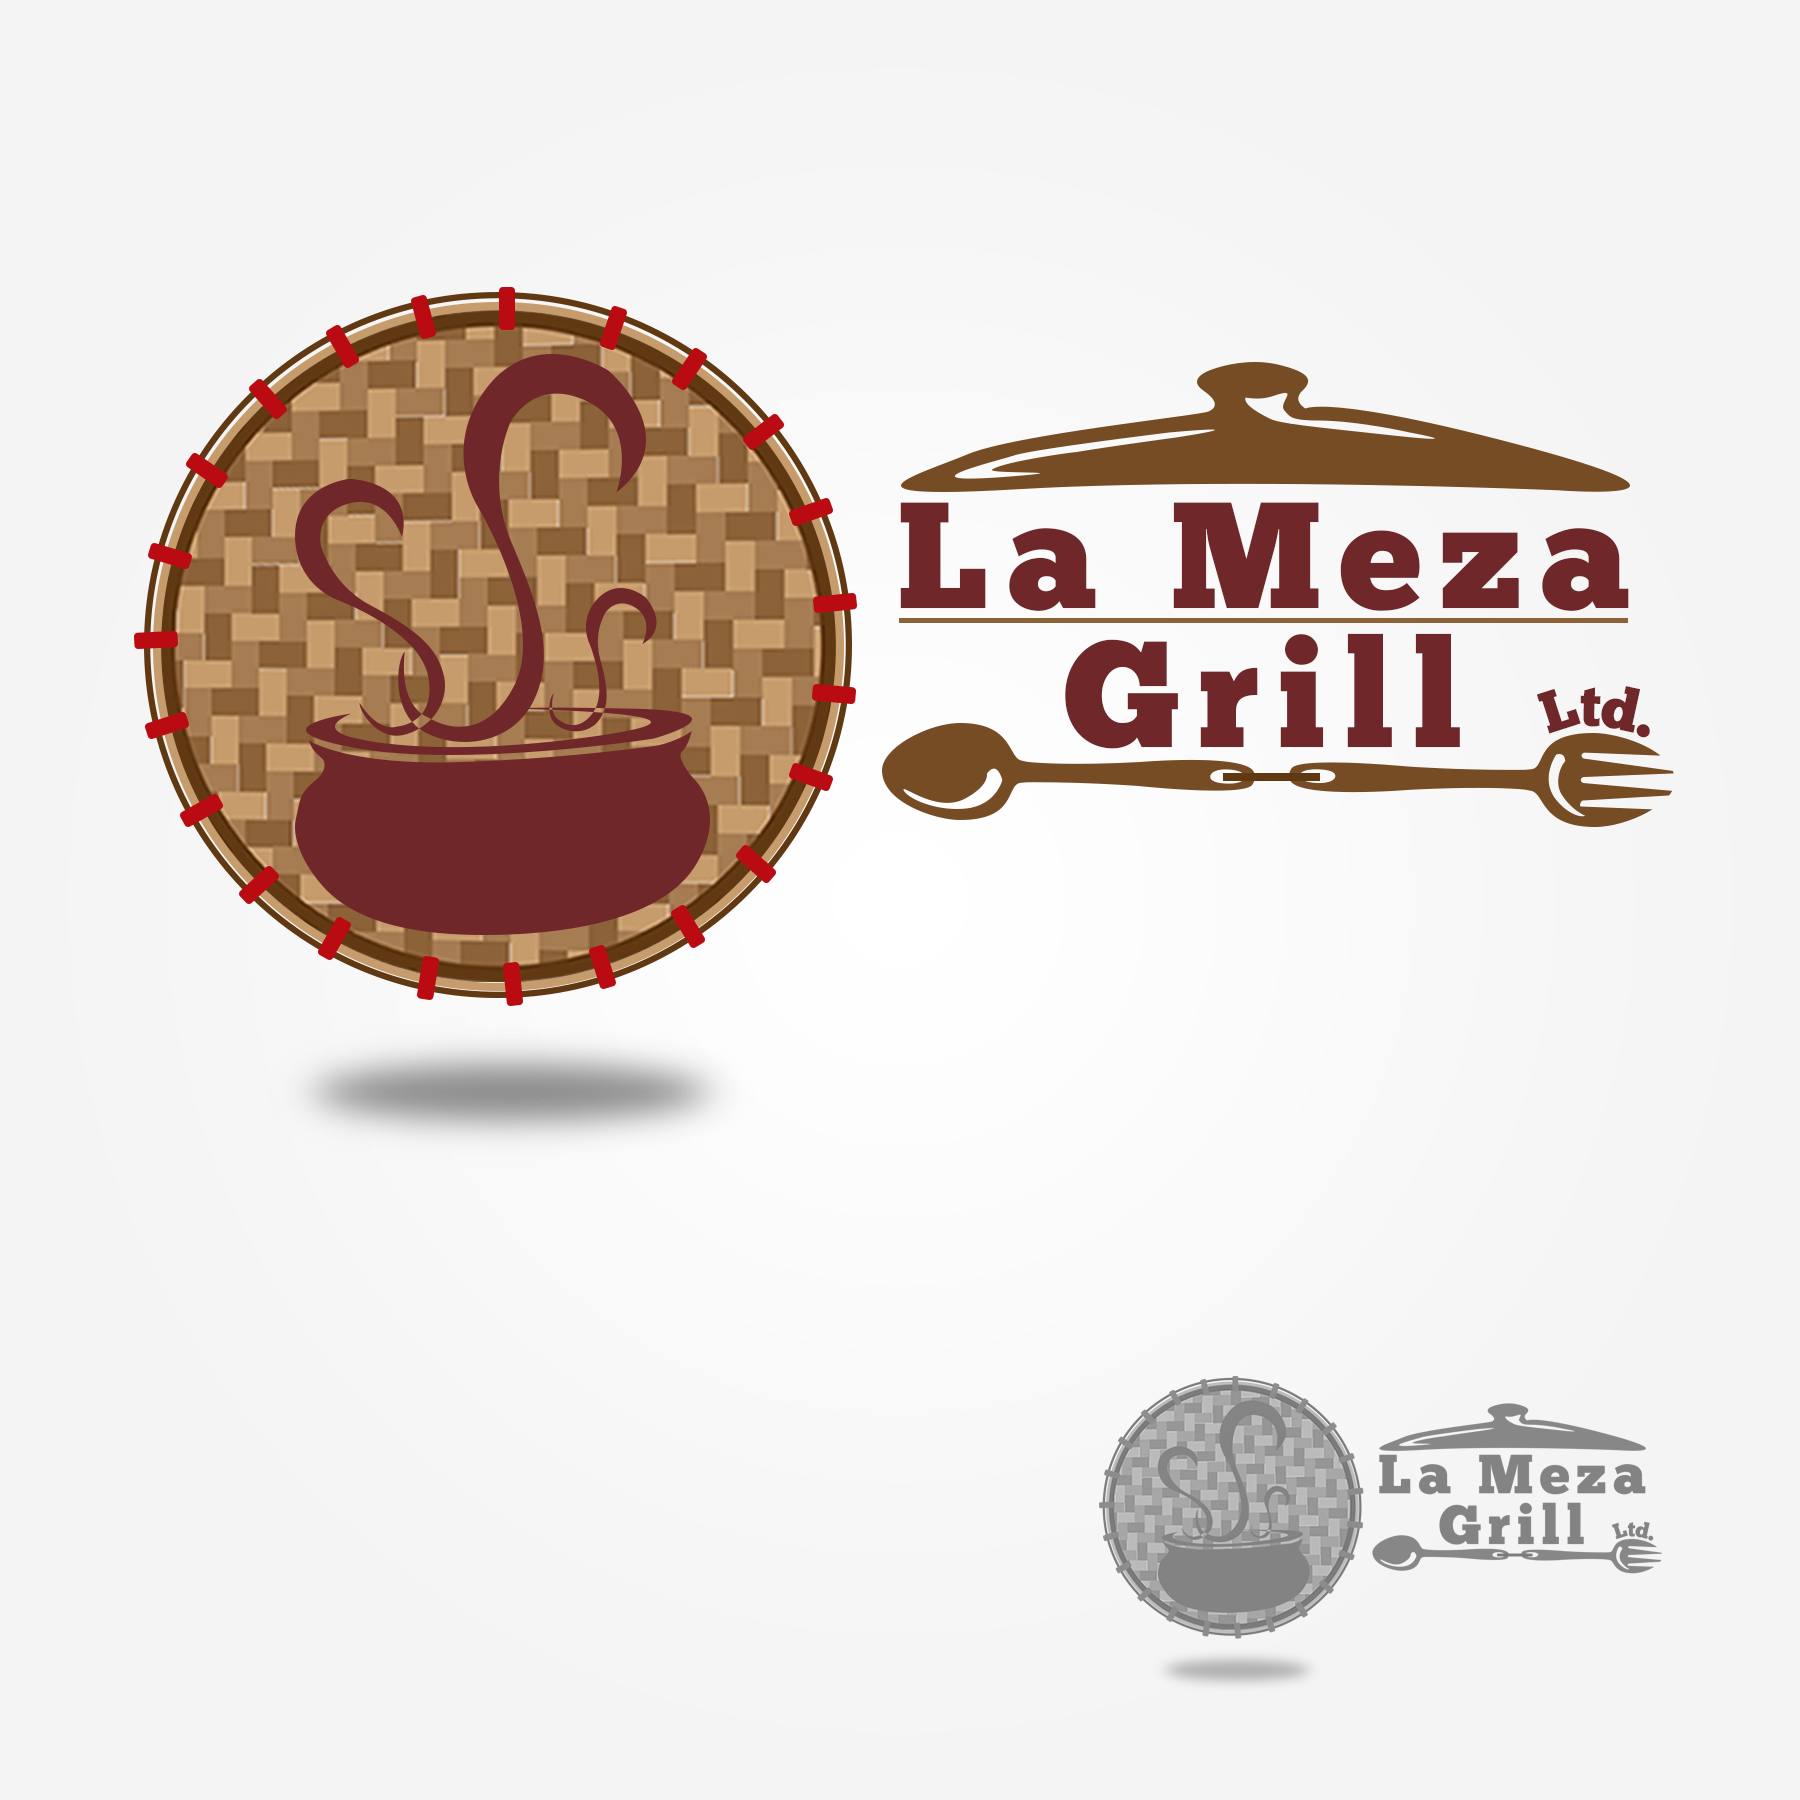 Logo Design by Lemuel Arvin Tanzo - Entry No. 79 in the Logo Design Contest Inspiring Logo Design for La Meza Grill Ltd..